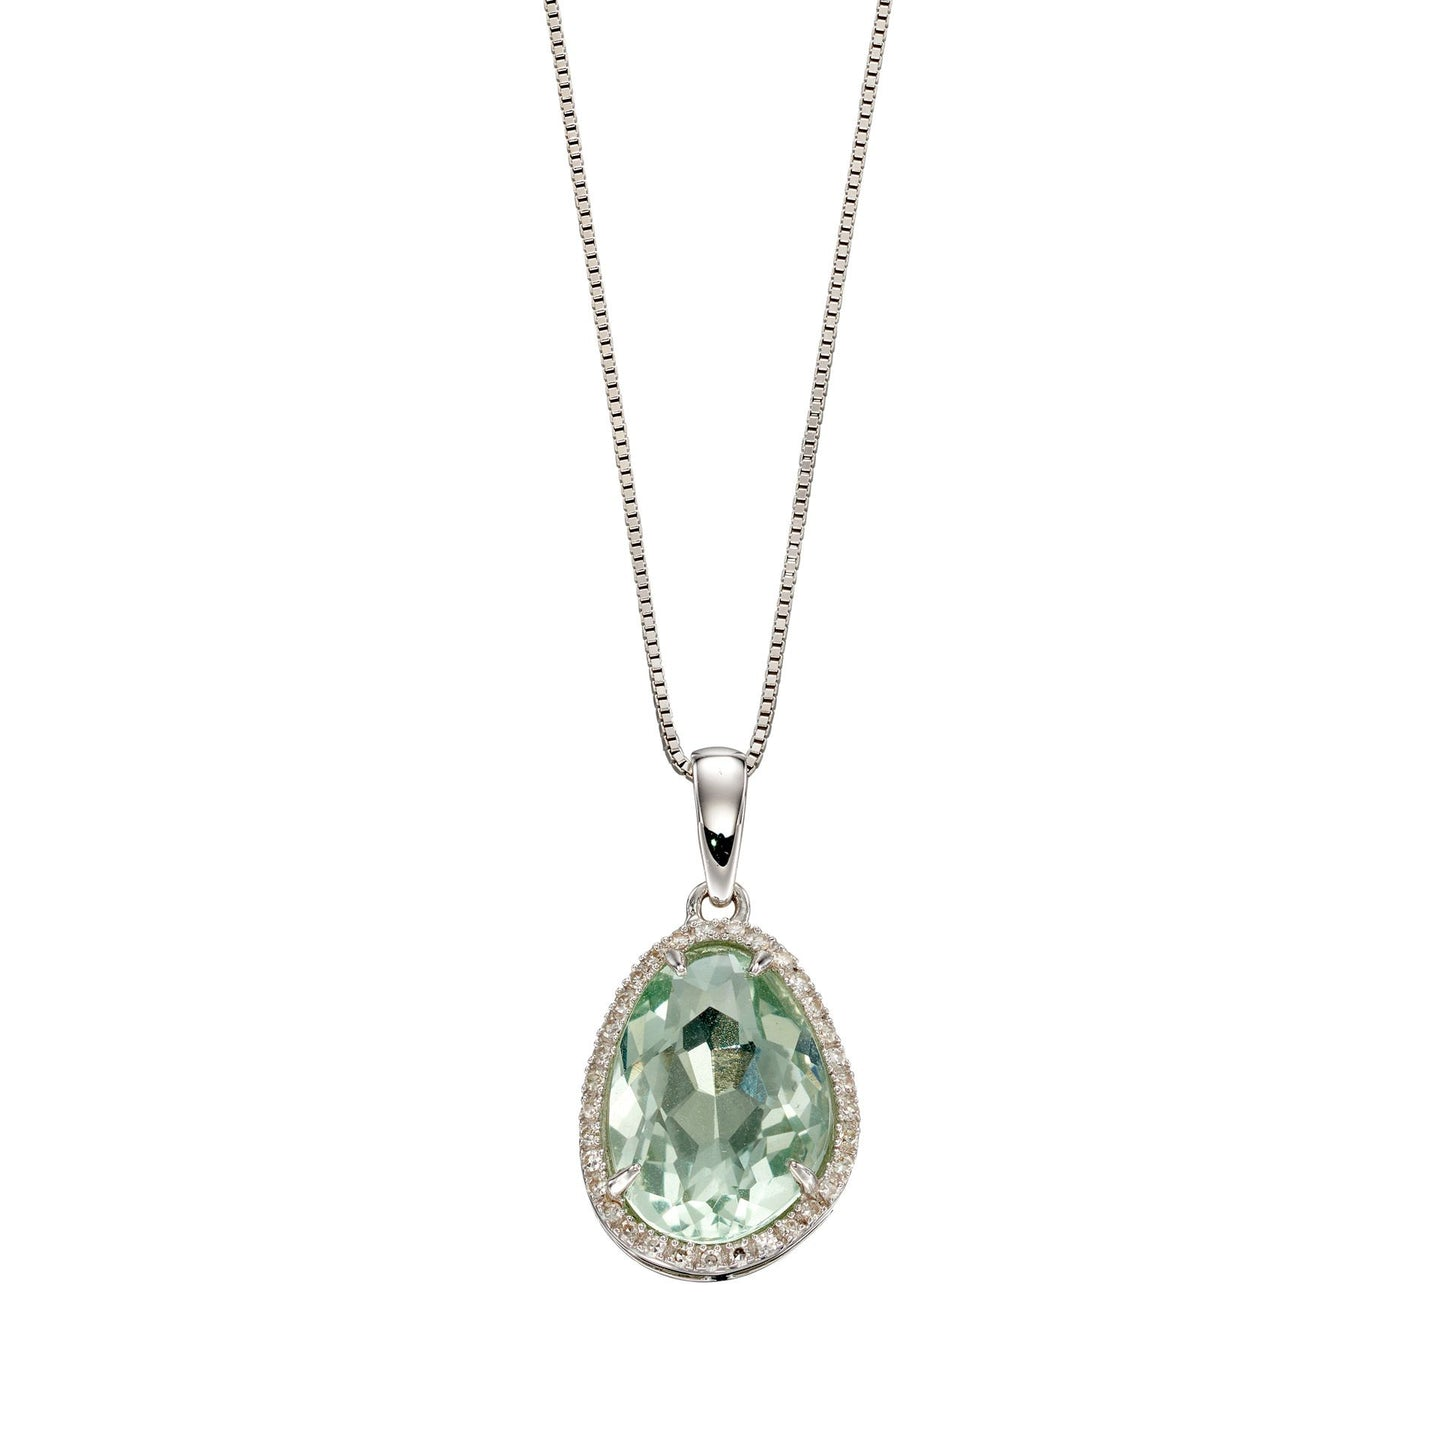 9ct White Gold Green Fluorite Irregular Pendant